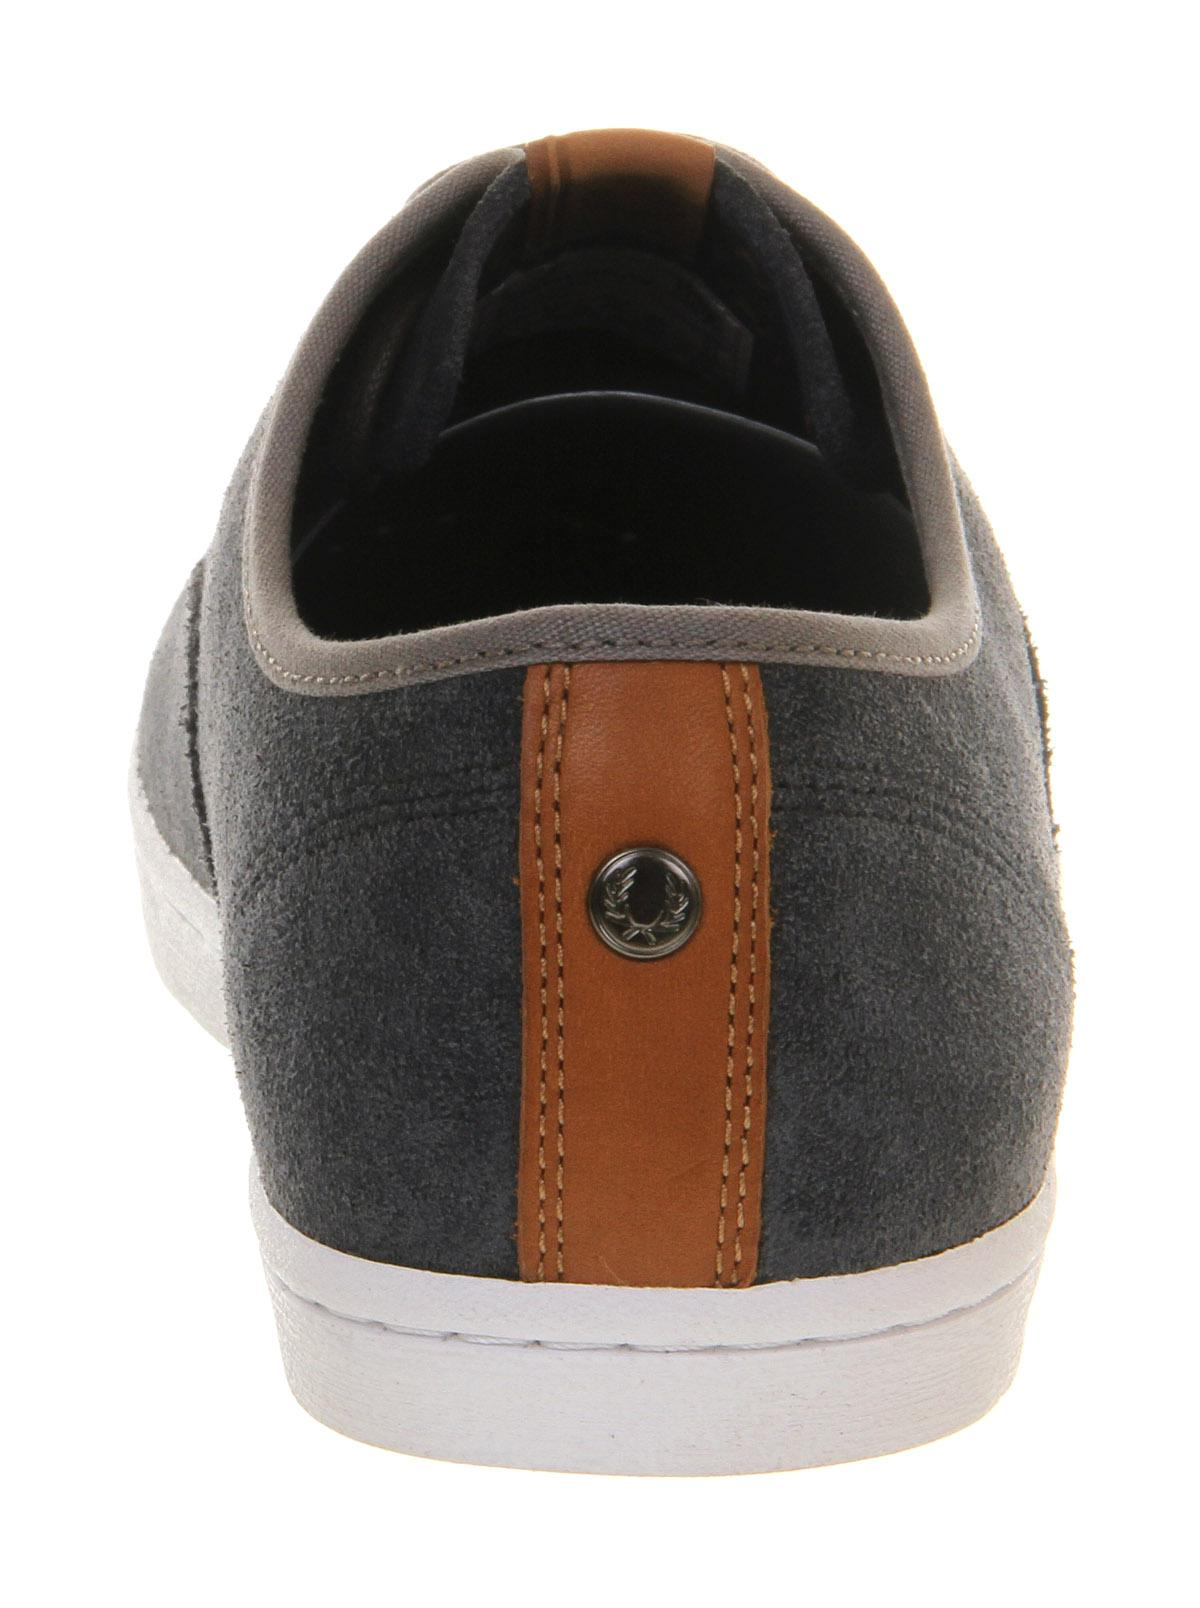 Fred Perry Hunt in Charcoal (Black) for Men